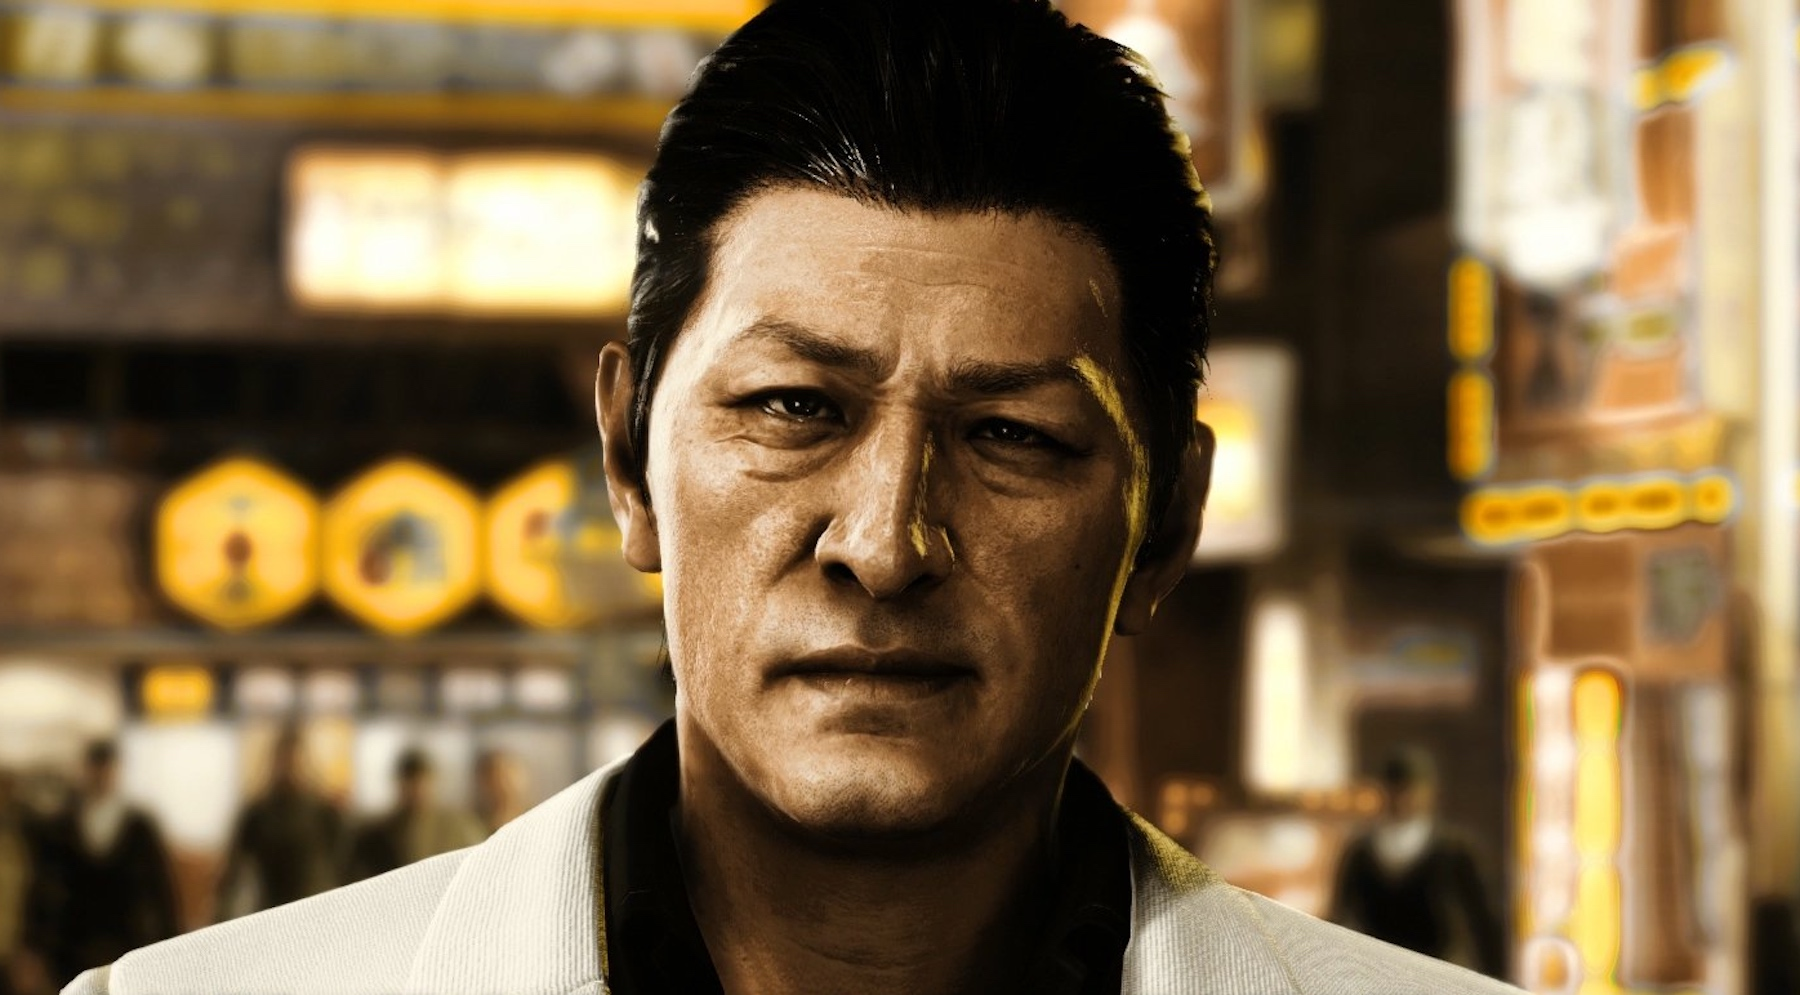 Sega gives Judgment character a new face after actor's arrest